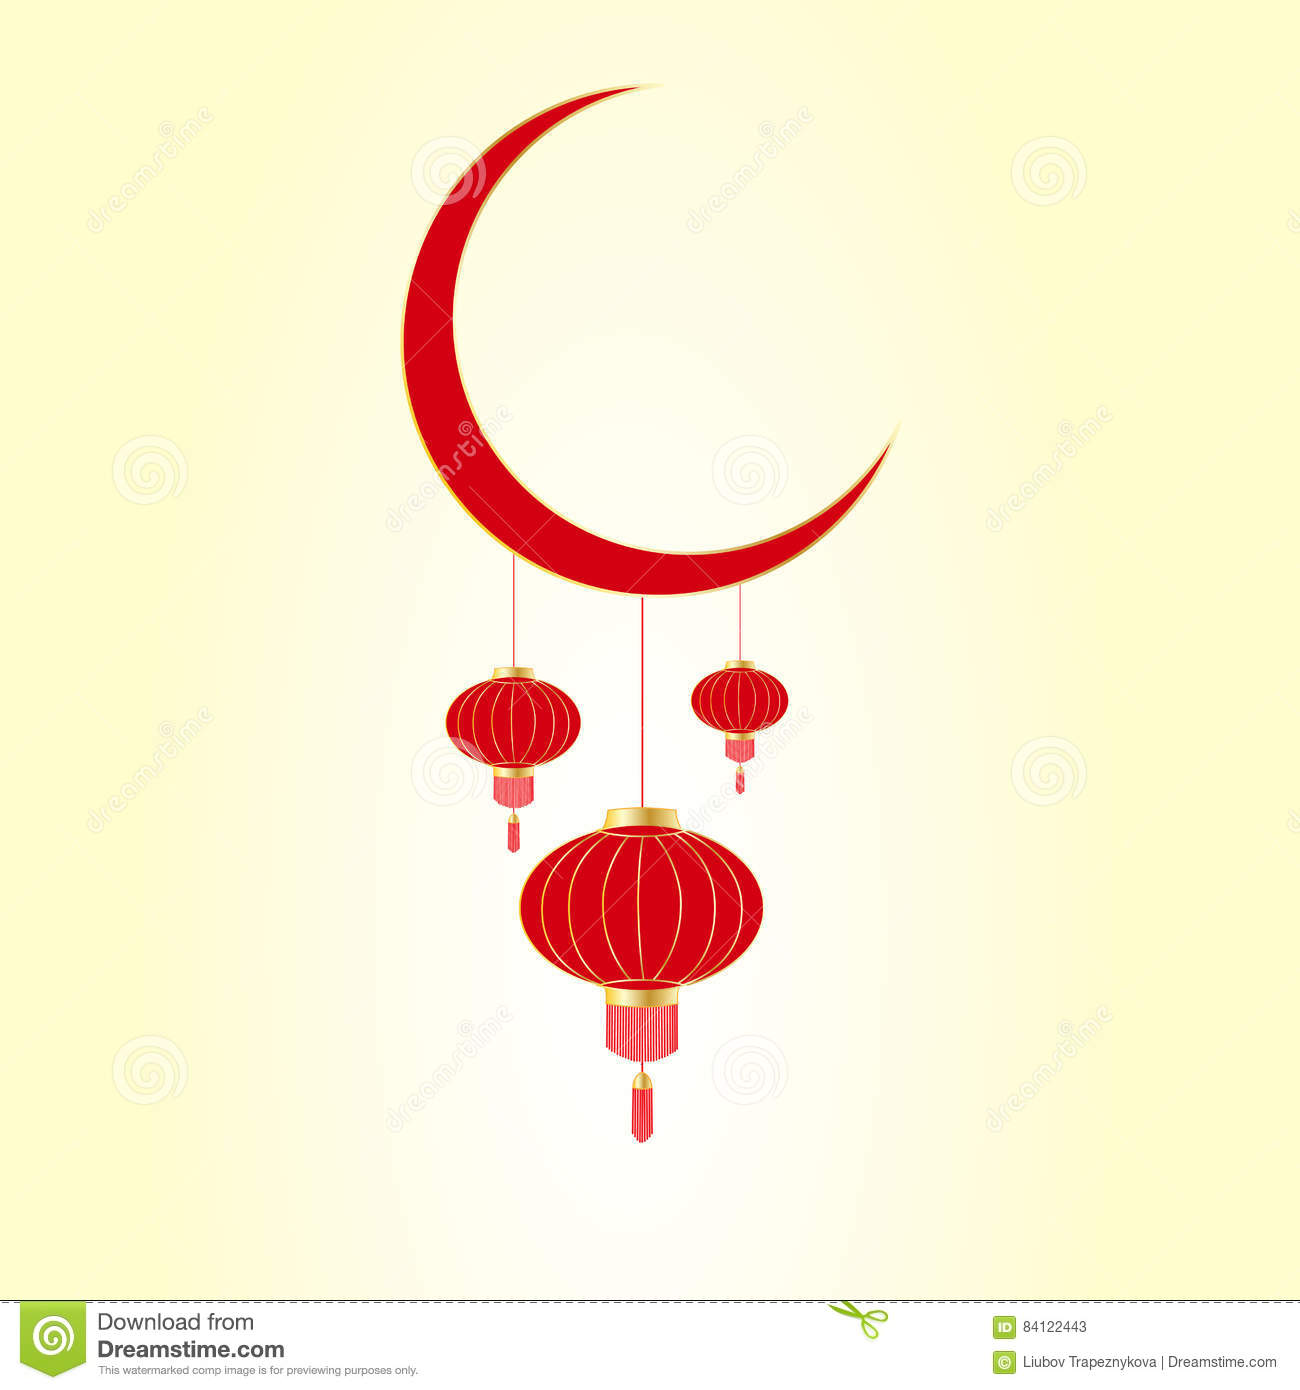 Moonstock Festival 2020 Asian Lunar New Year Festival. Red Chinese Lanterns Hanging From